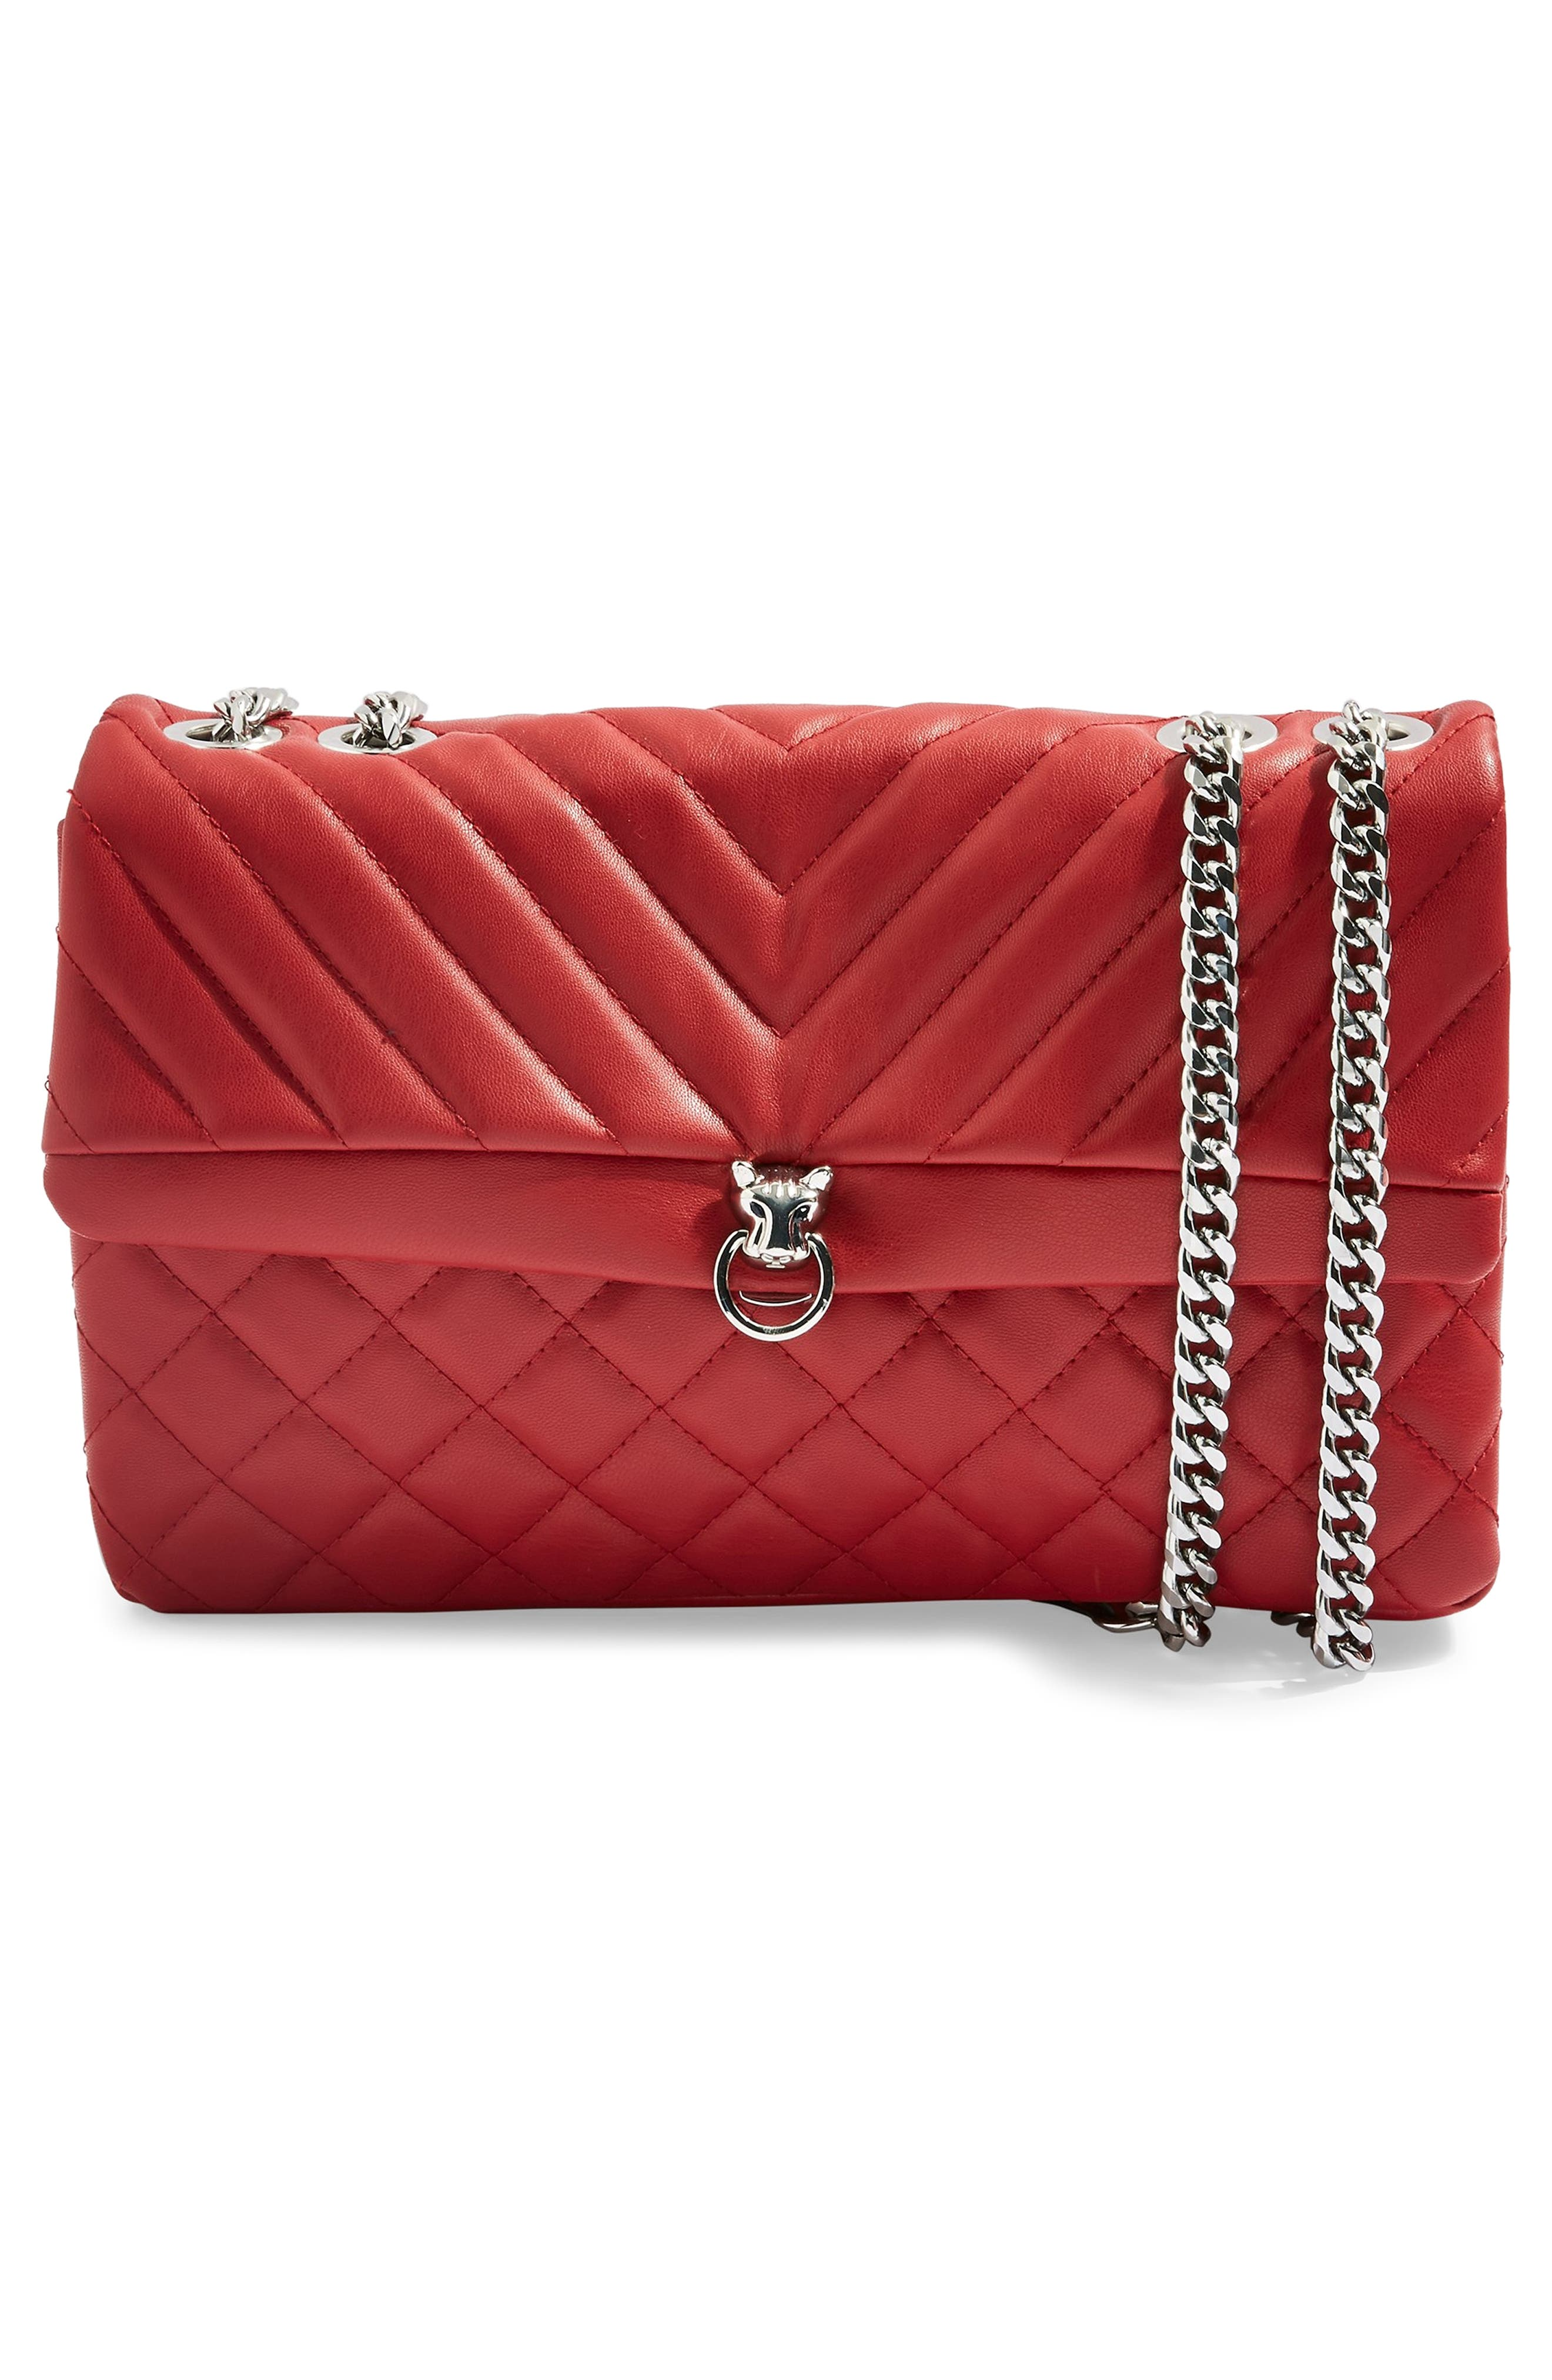 Panther Quilted Faux Leather Shoulder Bag,                             Alternate thumbnail 4, color,                             RED MULTI